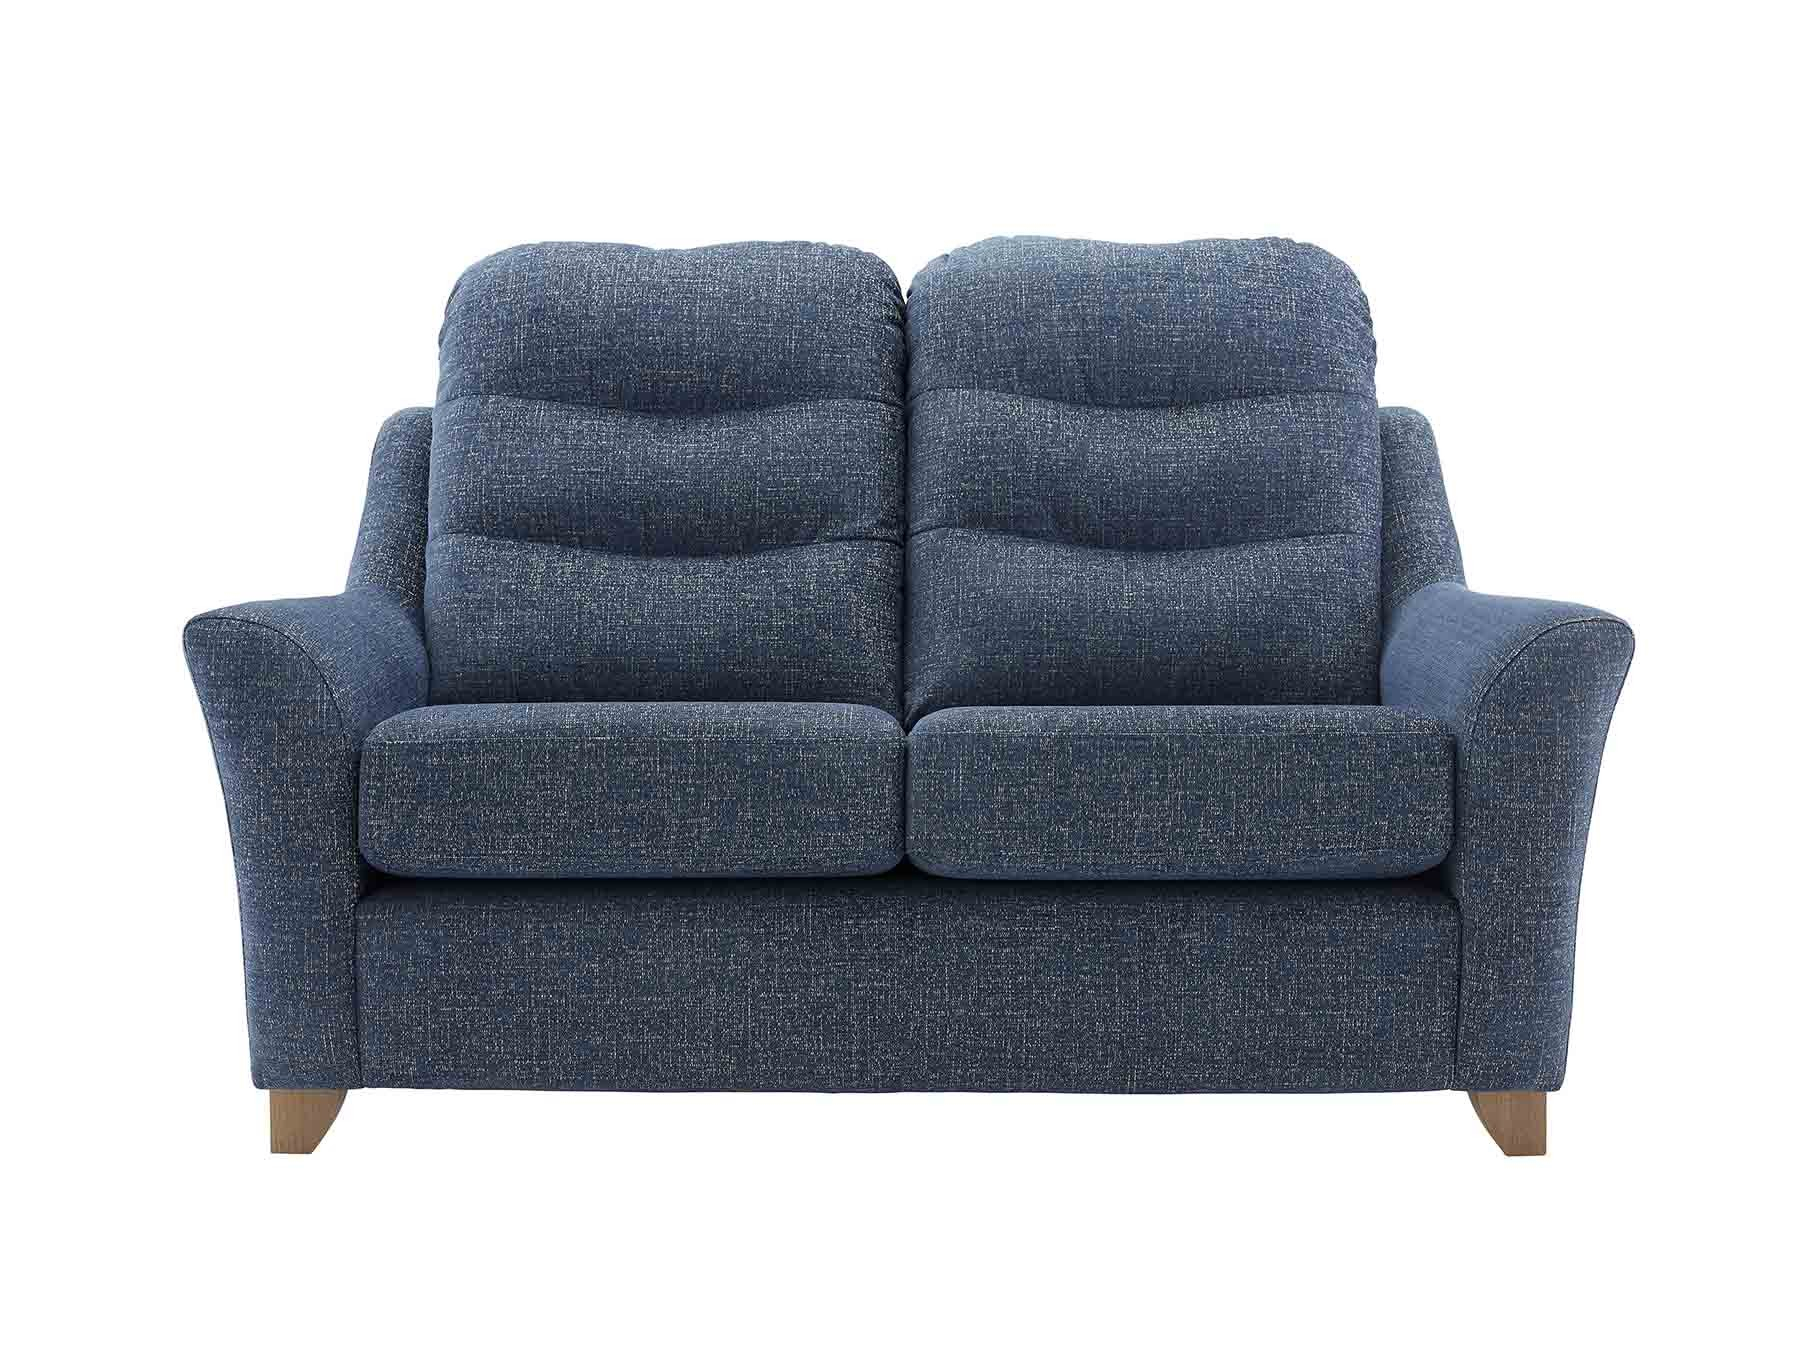 Featured Image of Tate Ii Sofa Chairs